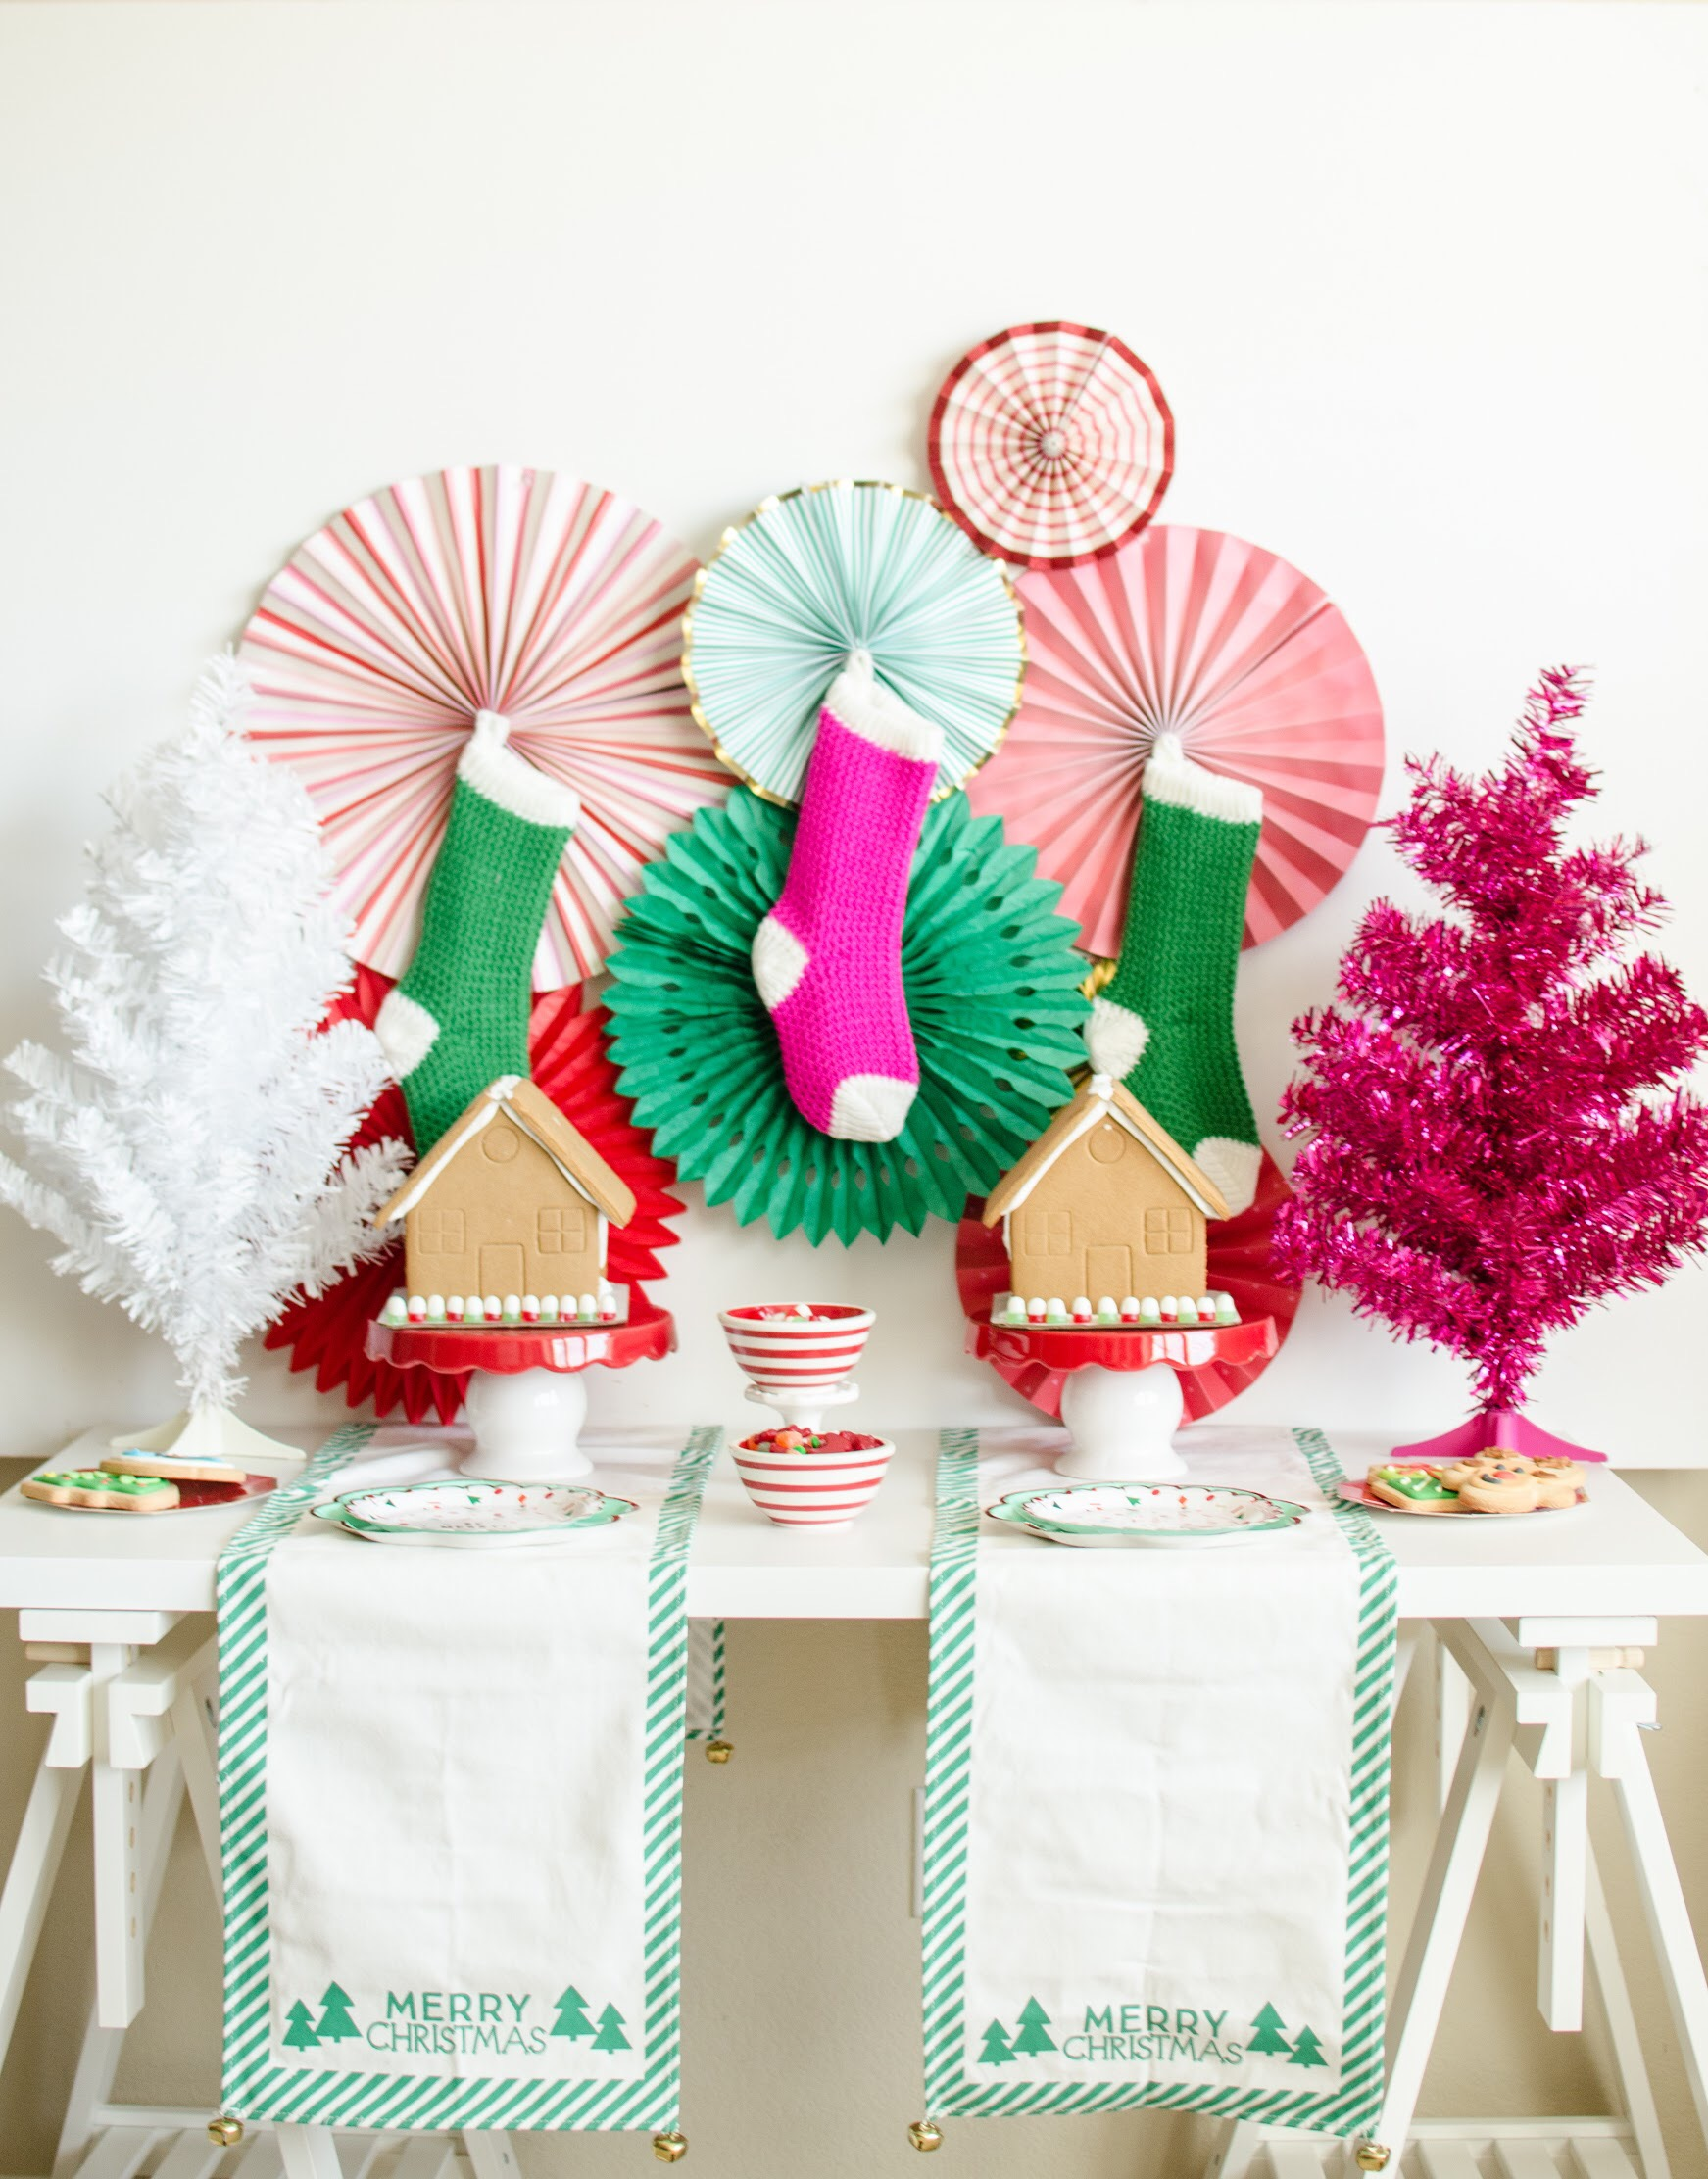 Find out how to surprise your kids with a fun gingerbread house decorating party using the holiday decorations you already have. See the full decorating details and party set up design on Mint Event Design www.minteventdesign.com #gingerbreadhouse #holidayparty #holidays #partyideas #christmasparty #holidaypartyideas #kidsparty